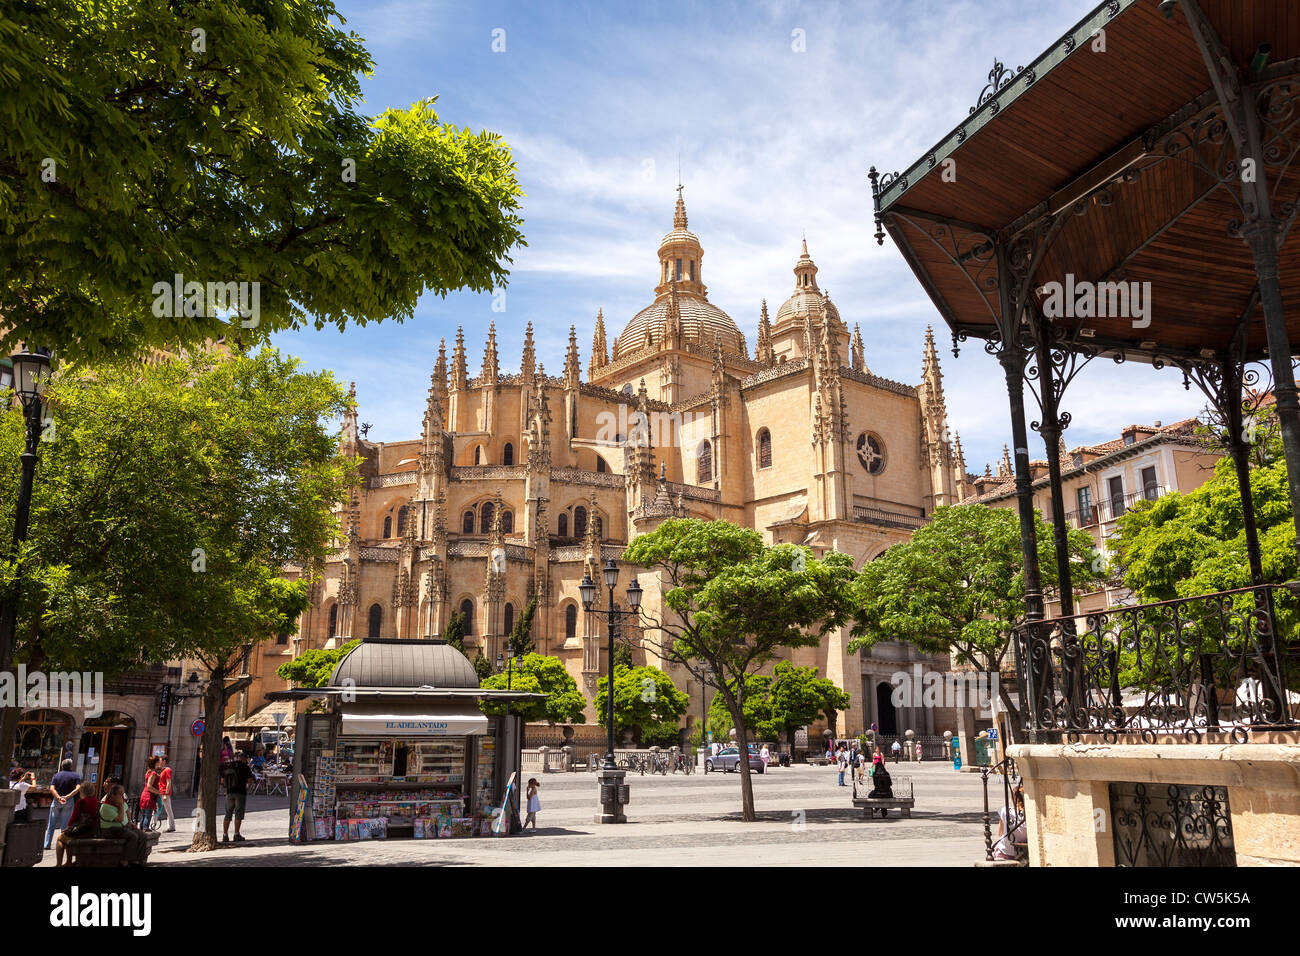 Segovia, Spain, Europe. Skyline view of this beautiful Cathedral building. - Stock Image